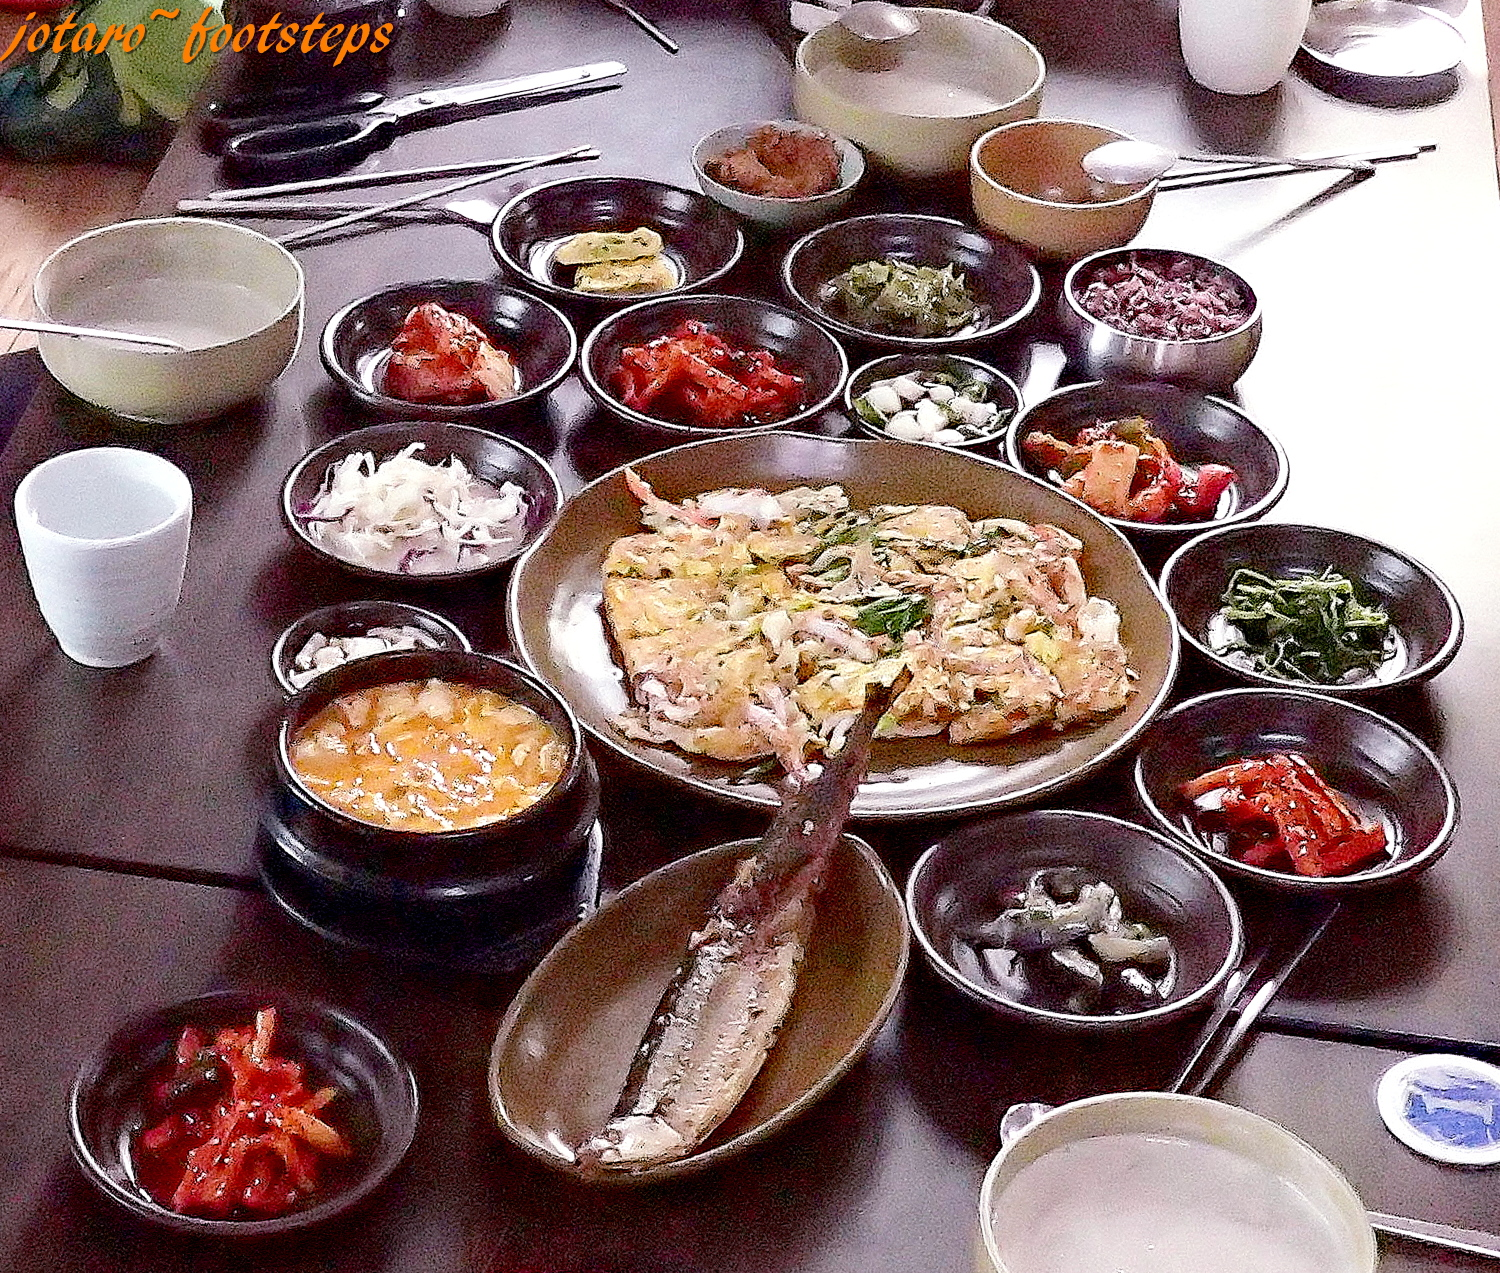 Footsteps jotaro 39 s travels yummy korean traditional for Authentic korean cuisine